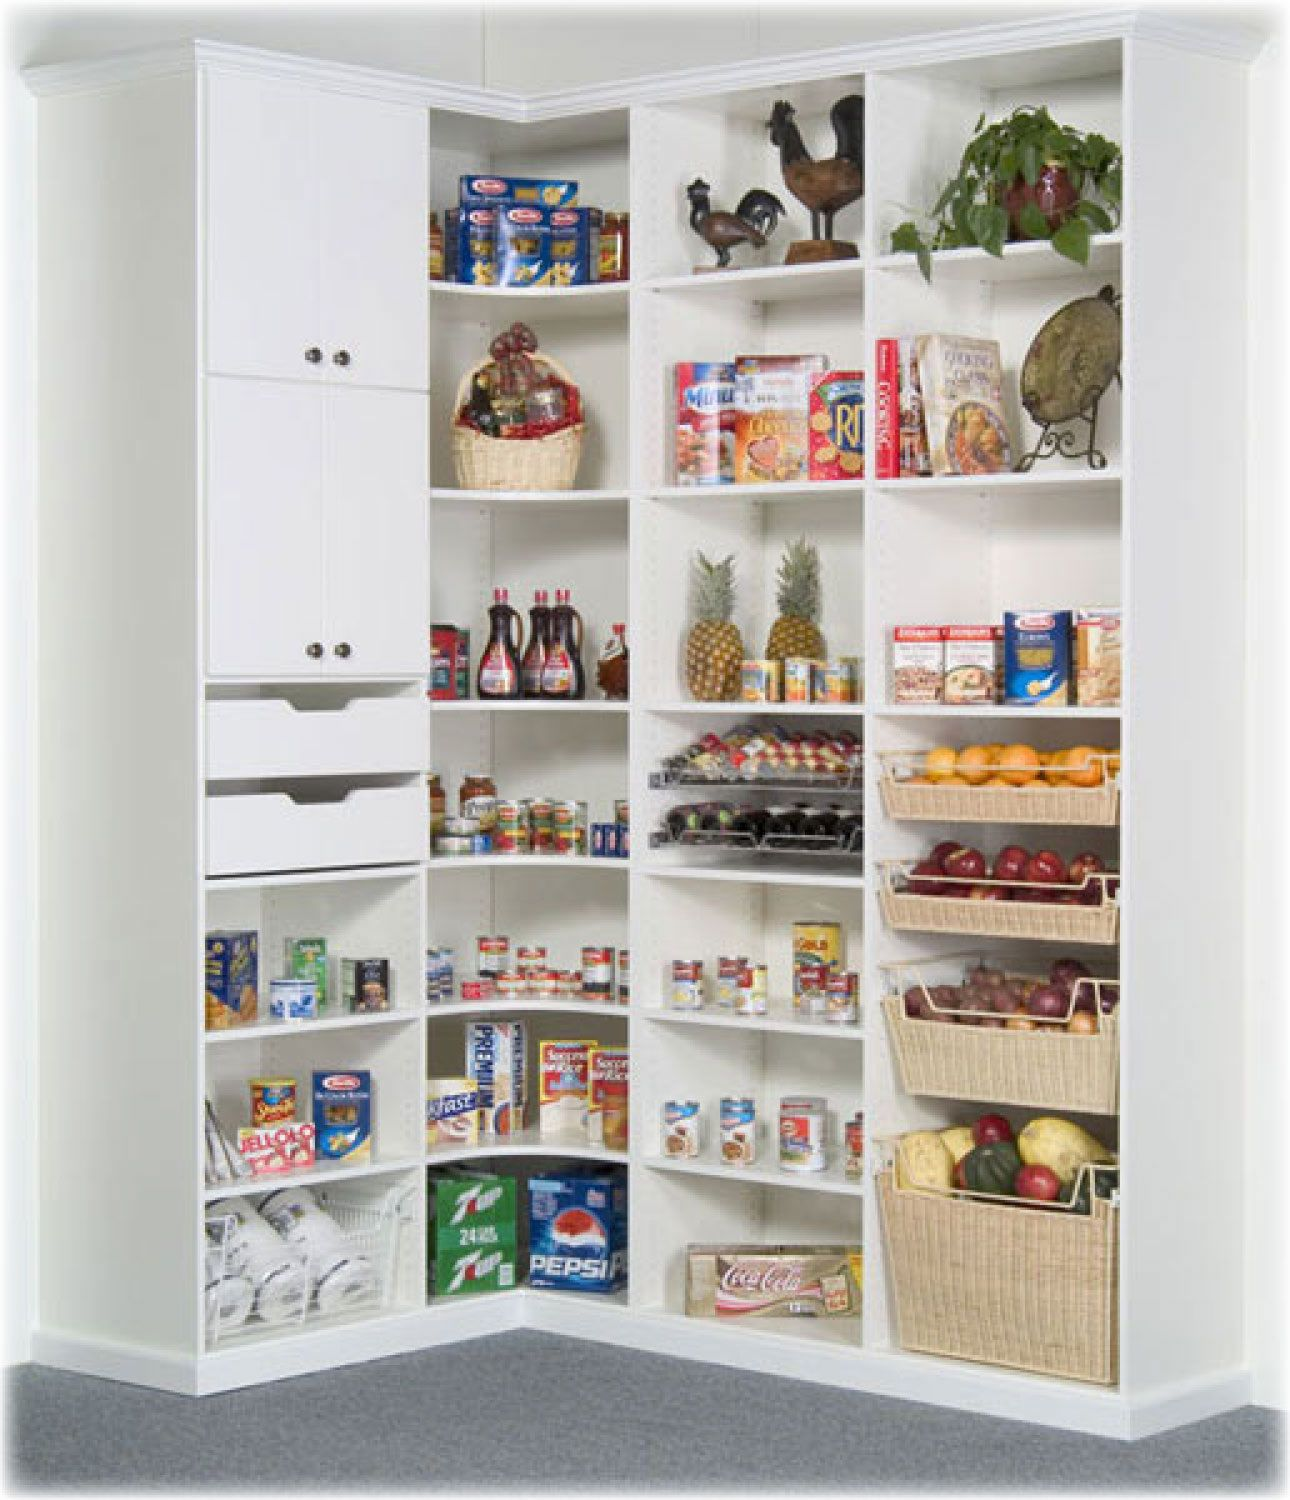 Pantry Organization Ideas Many Quality Accessories Kitchen And Pantry Organizers Various Drawer Kitchen Pantry Storage Pantry Laundry Room Kitchen Organization Pantry